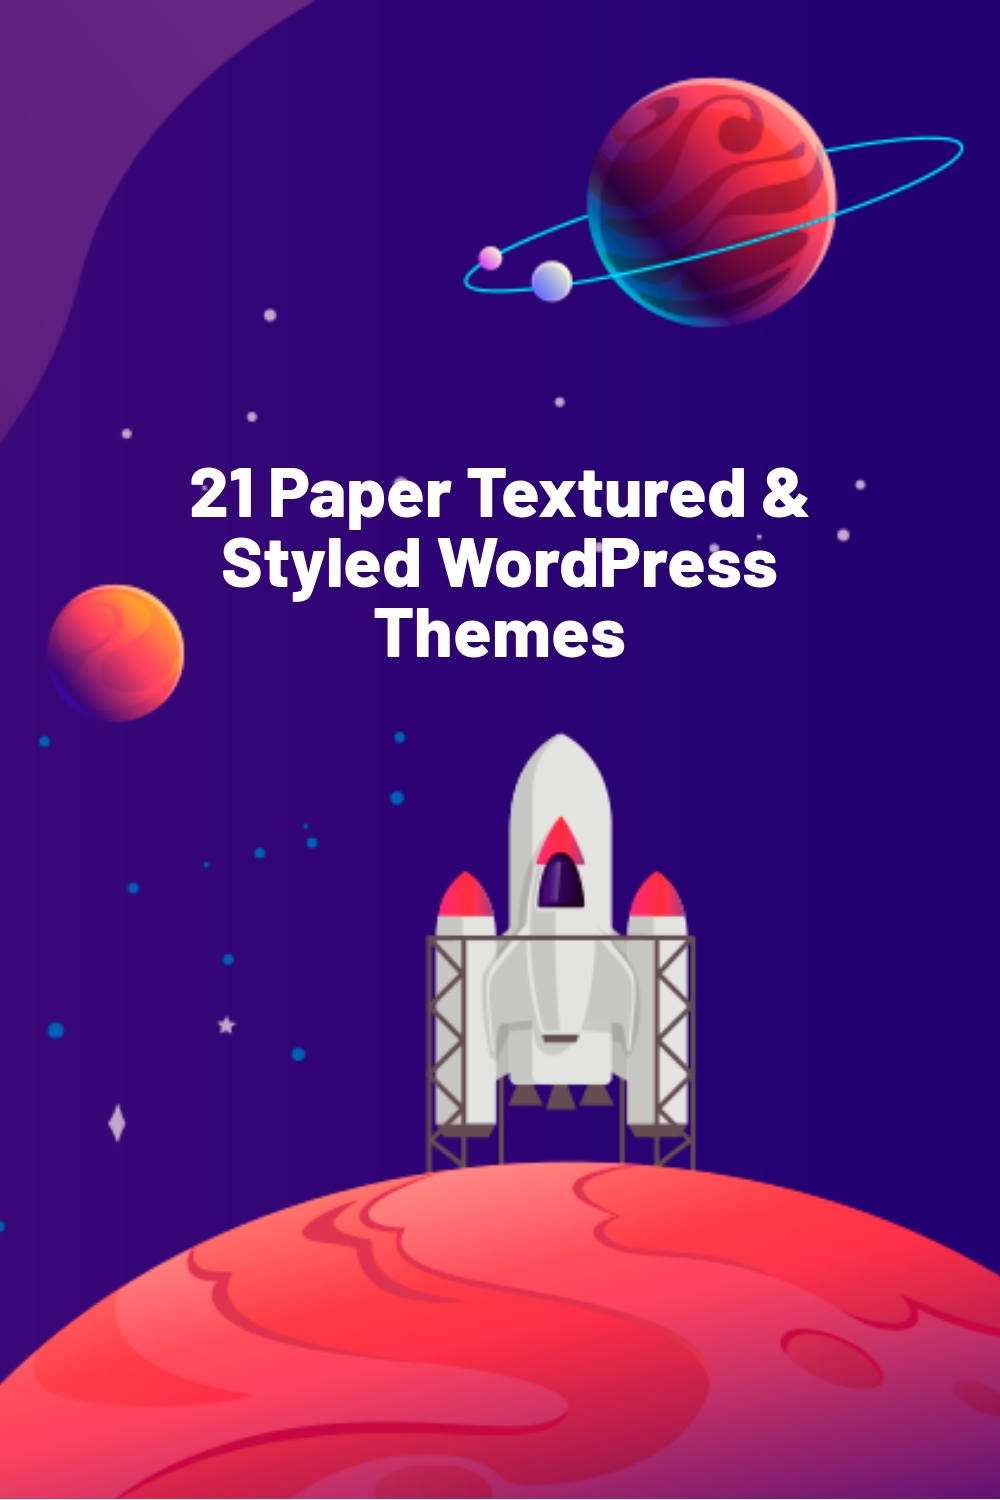 21 Paper Textured & Styled WordPress Themes